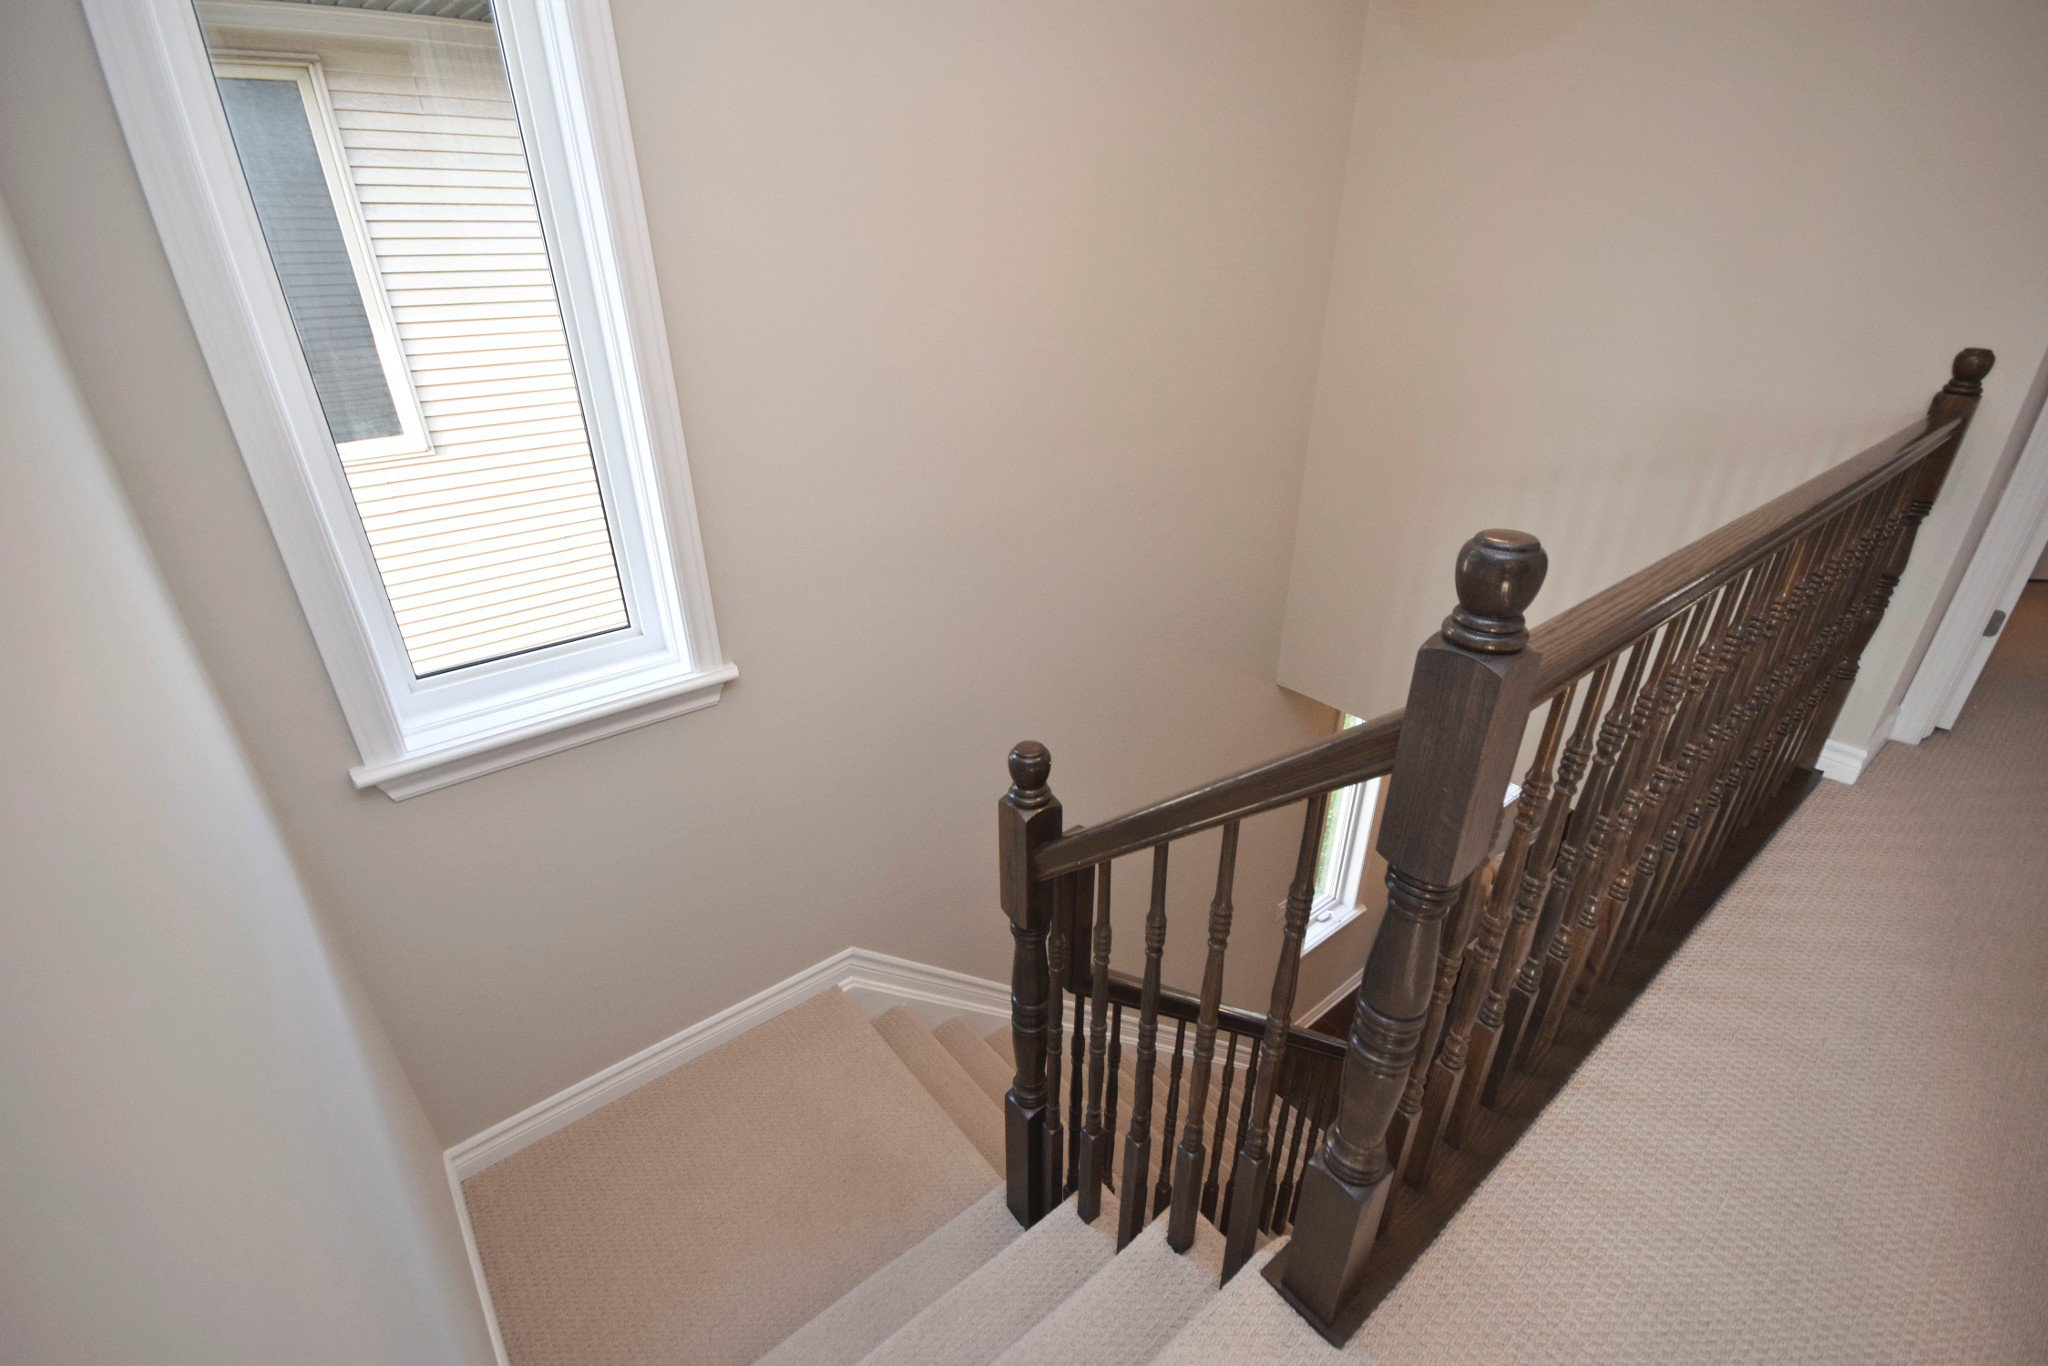 Photo 34: Photos: 131 Popplewell Crescent in Ottawa: Cedargrove / Fraserdale House for sale (Barrhaven)  : MLS®# 1130335